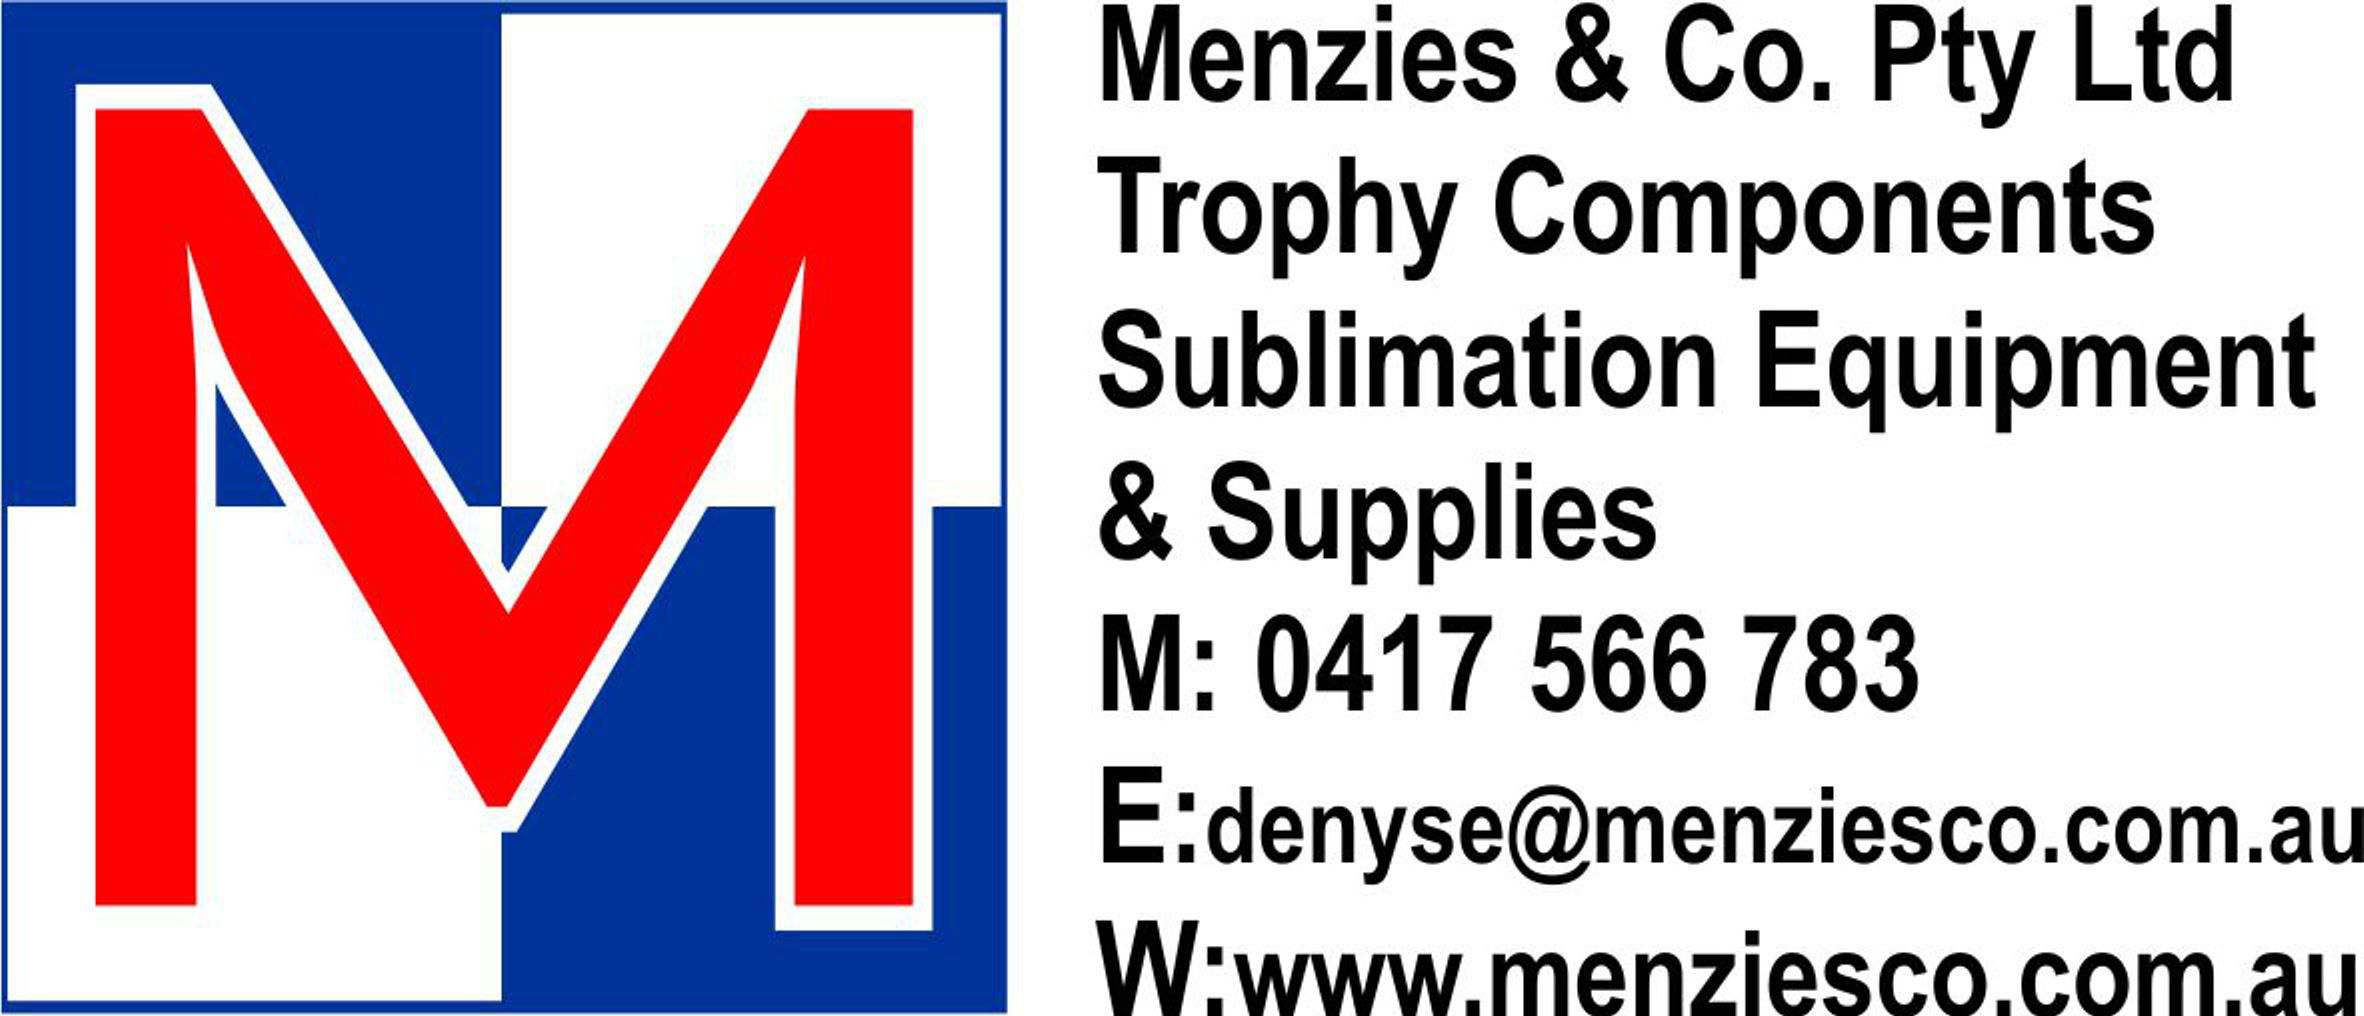 Menzies & Co